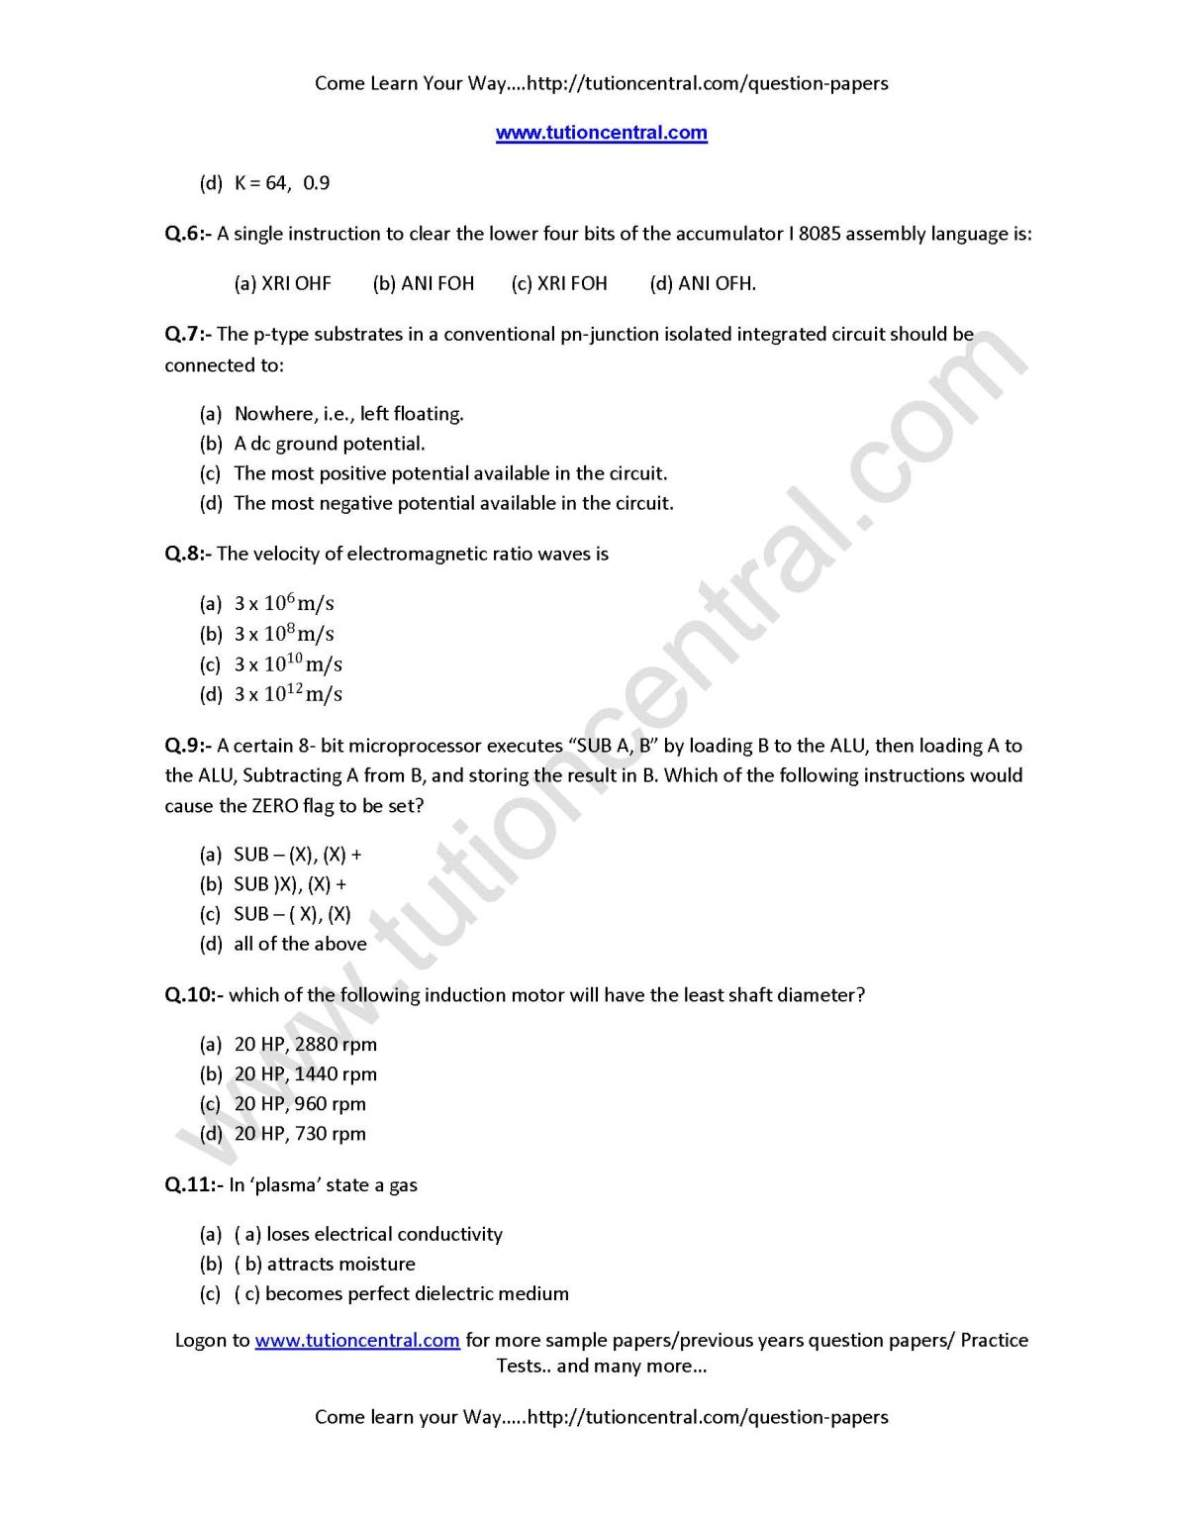 Drdo sta b electrical engineering exam question paper 2018 2019.